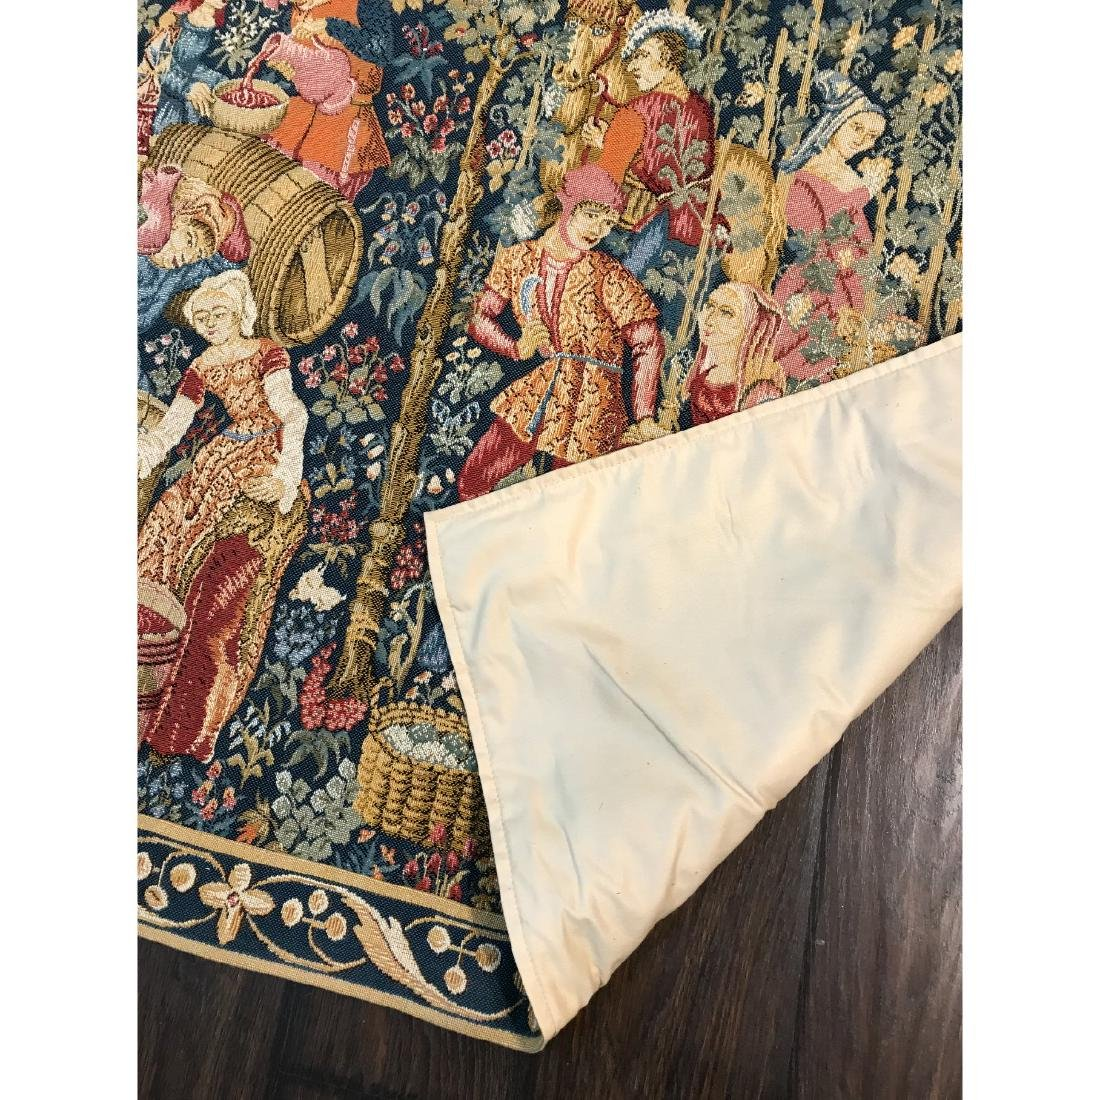 Tapestry with Scene of Medieval Wine Making w/ Rod - 8